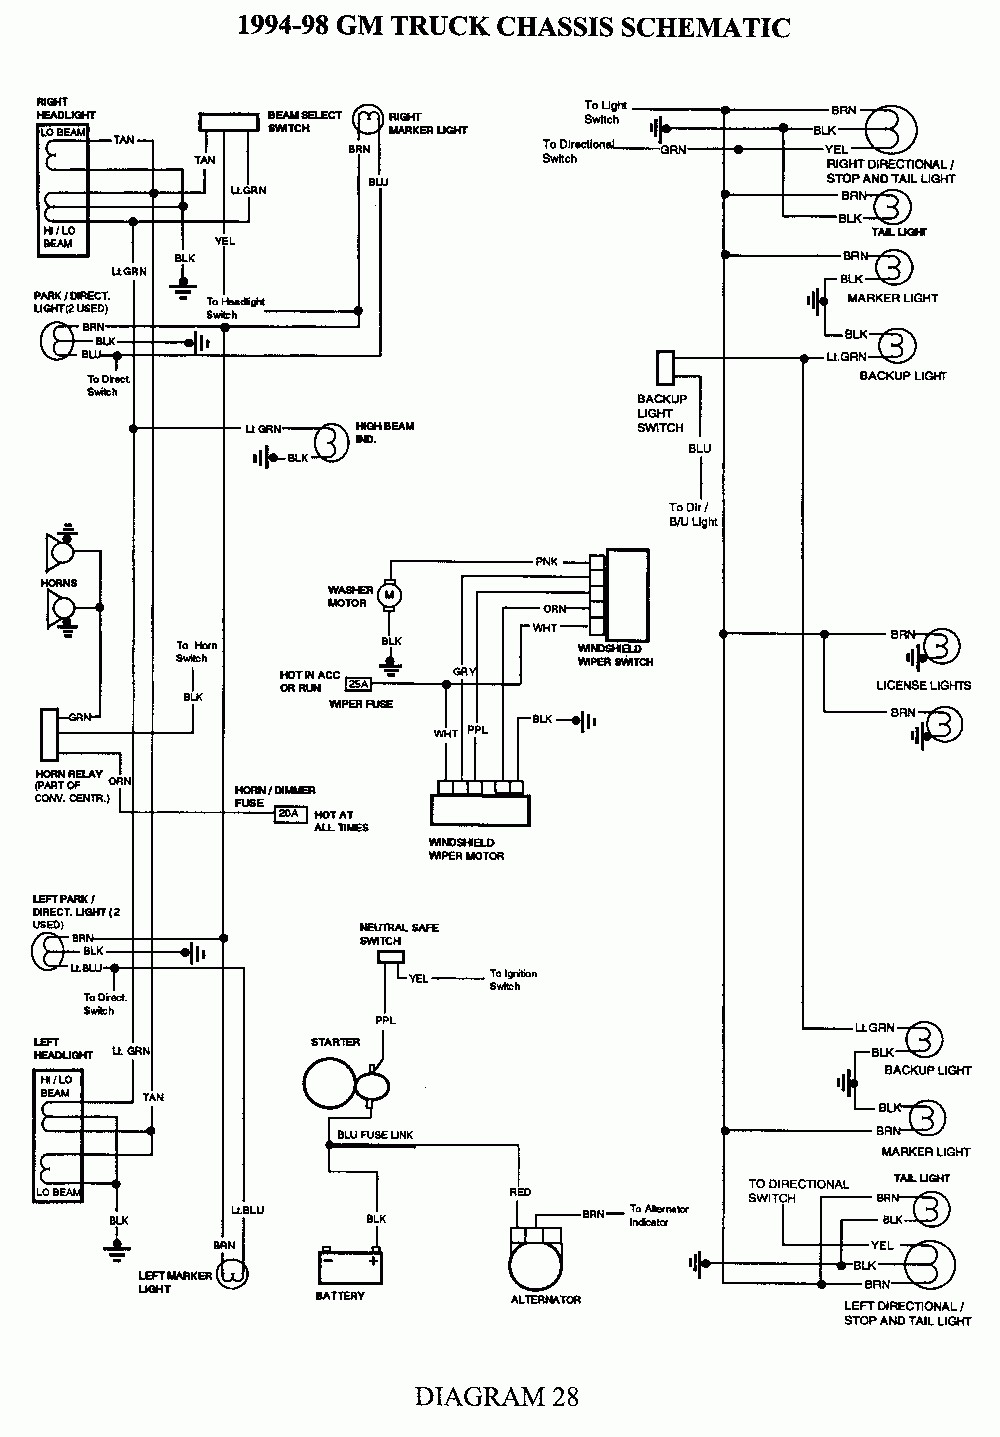 86 Chevrolet Truck Fuse Diagram - Wiring Diagram Networks